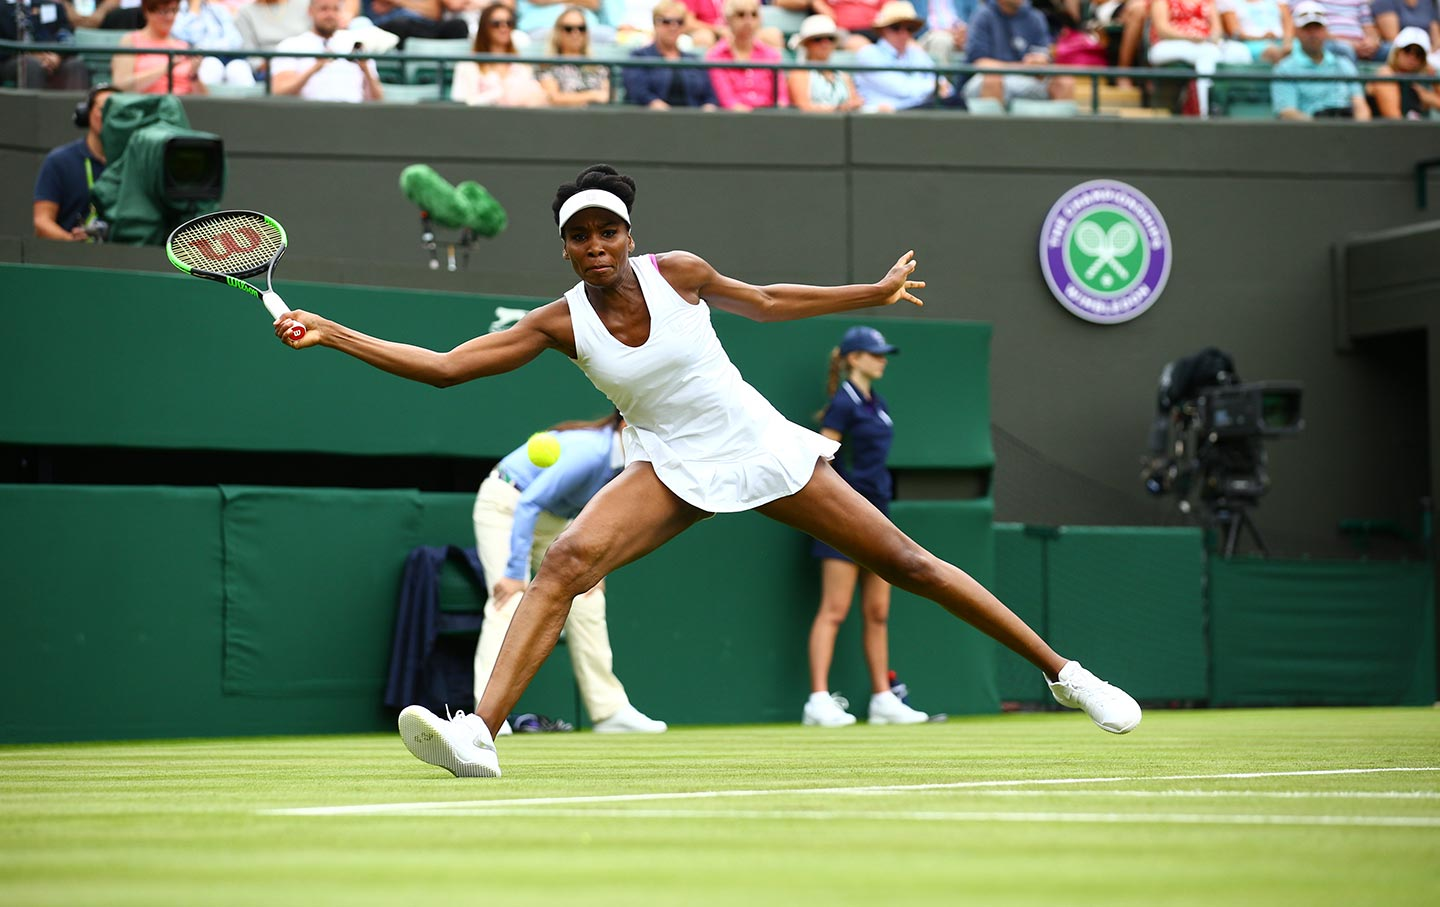 Venus Williams, a Car Accident, and the Outrageous Police